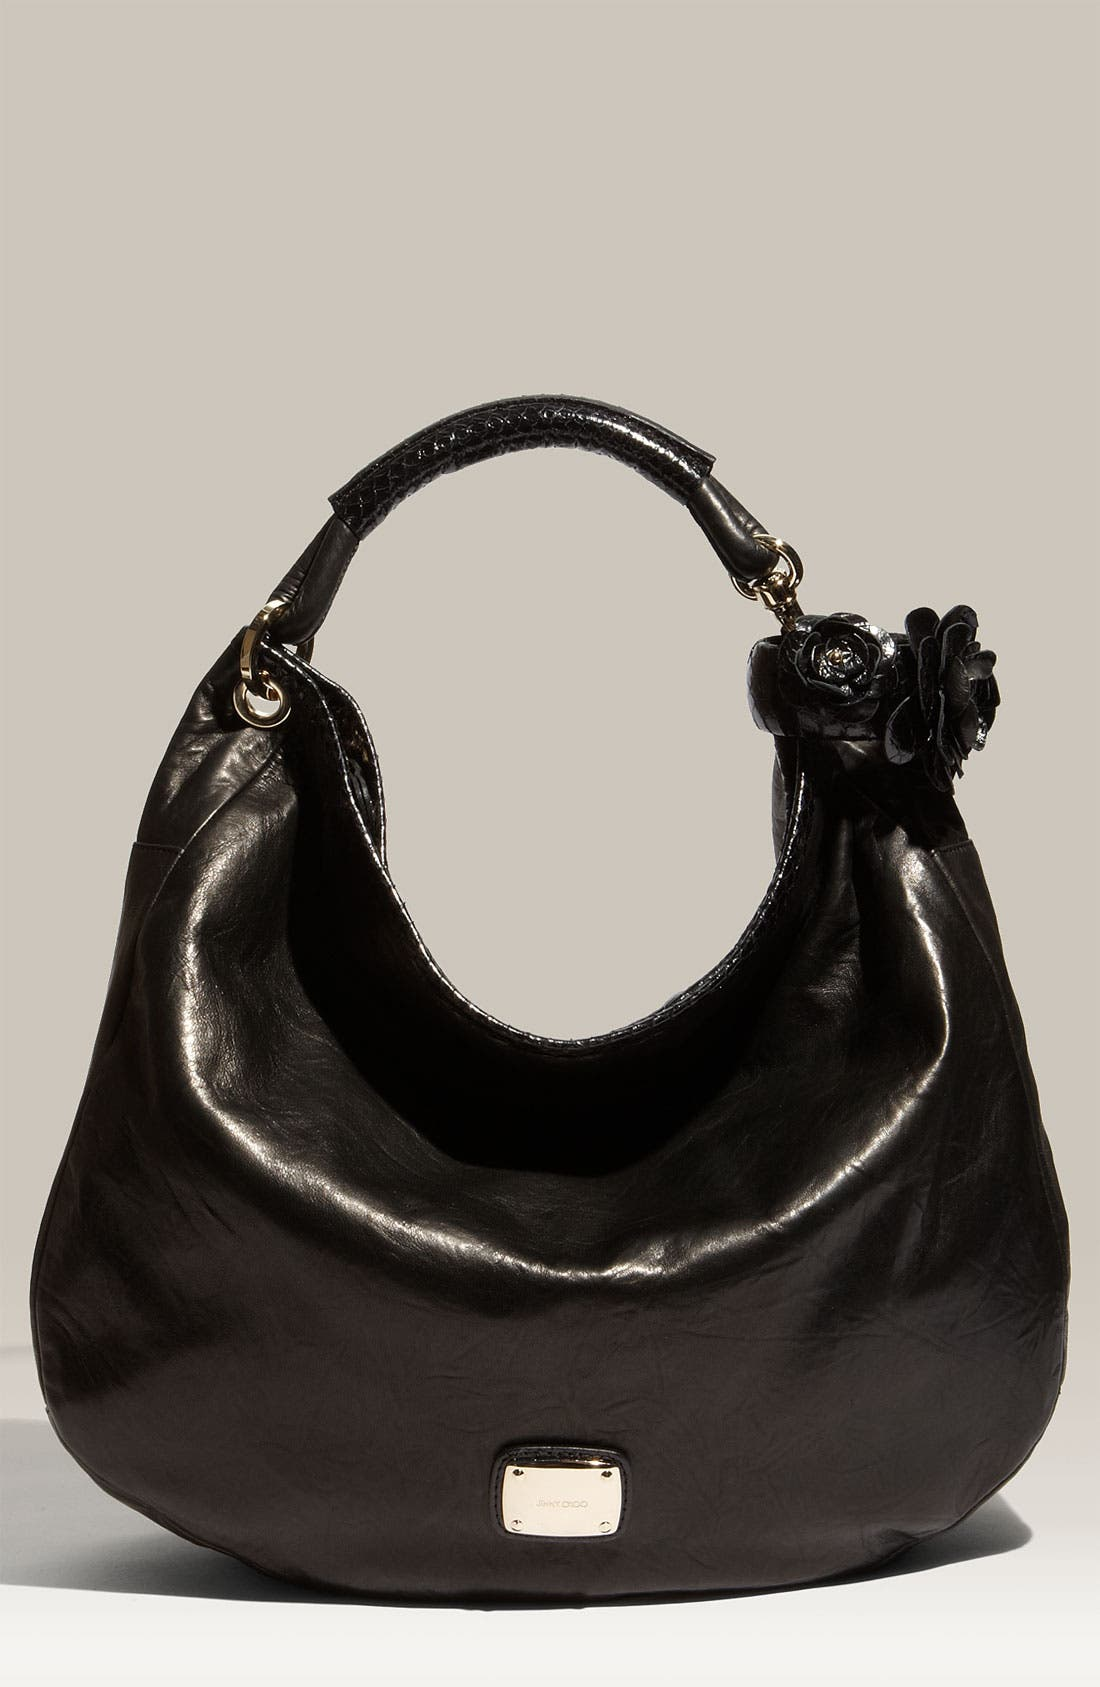 Alternate Image 1 Selected - Jimmy Choo 'Sky' Leather Hobo